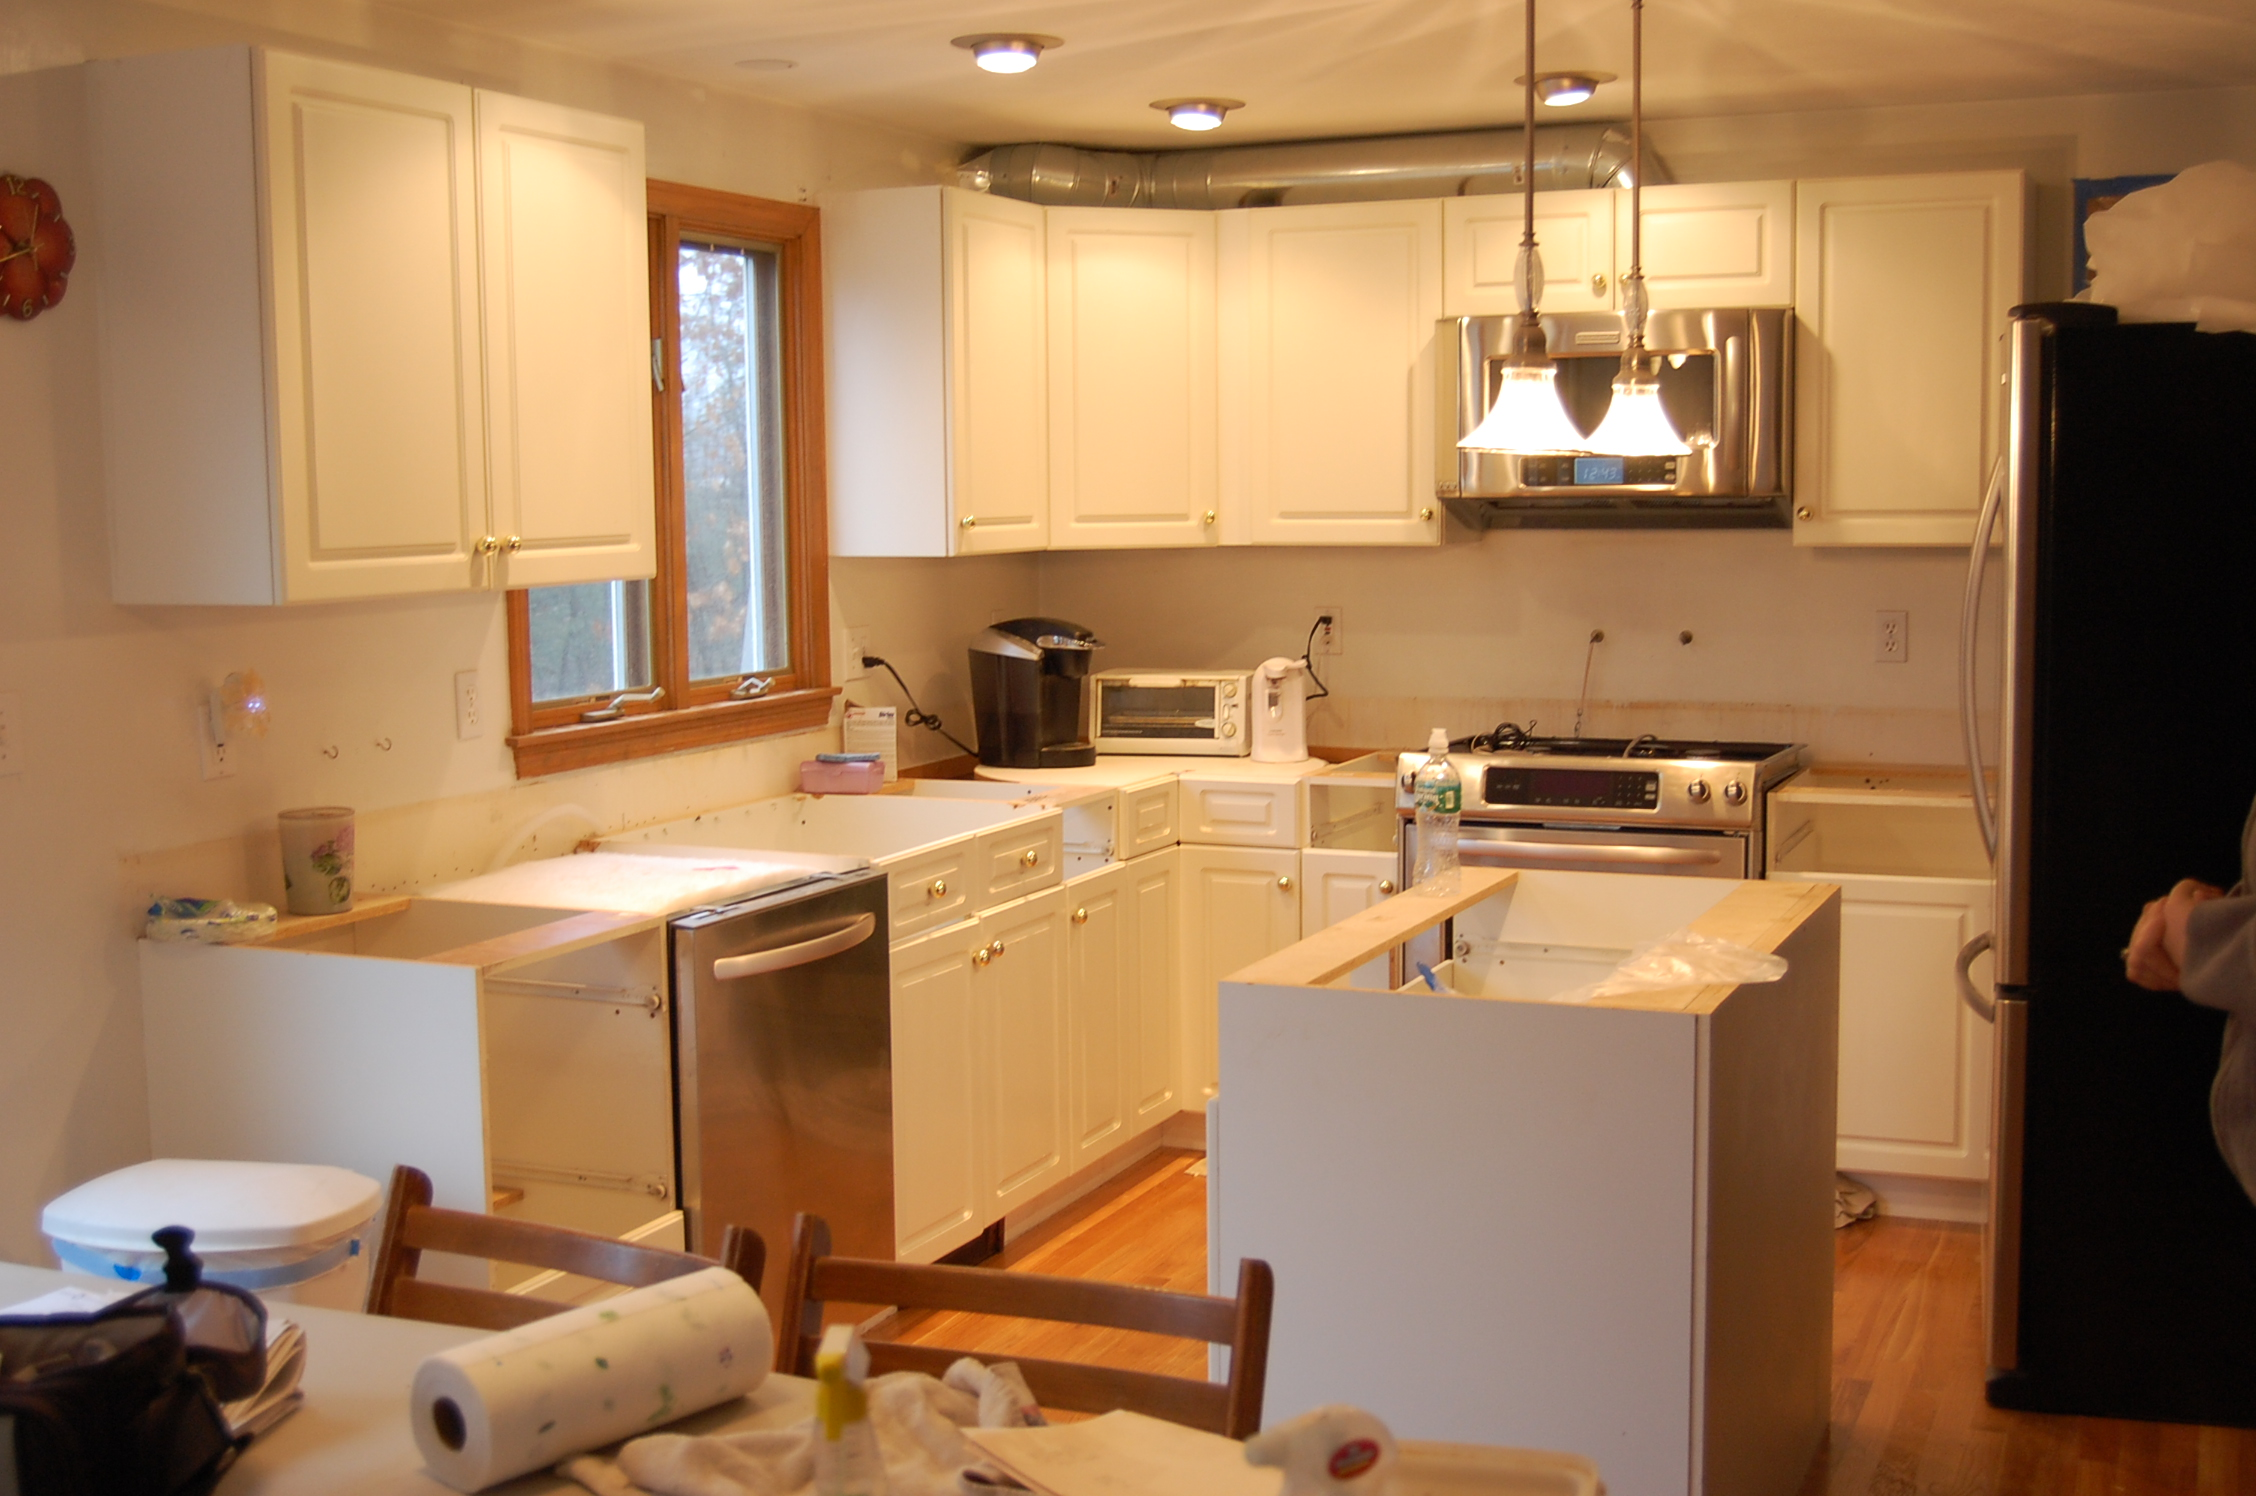 beautiful Kitchen Cabinets Refacing in white with oven and frige plus chandelier and wooden window